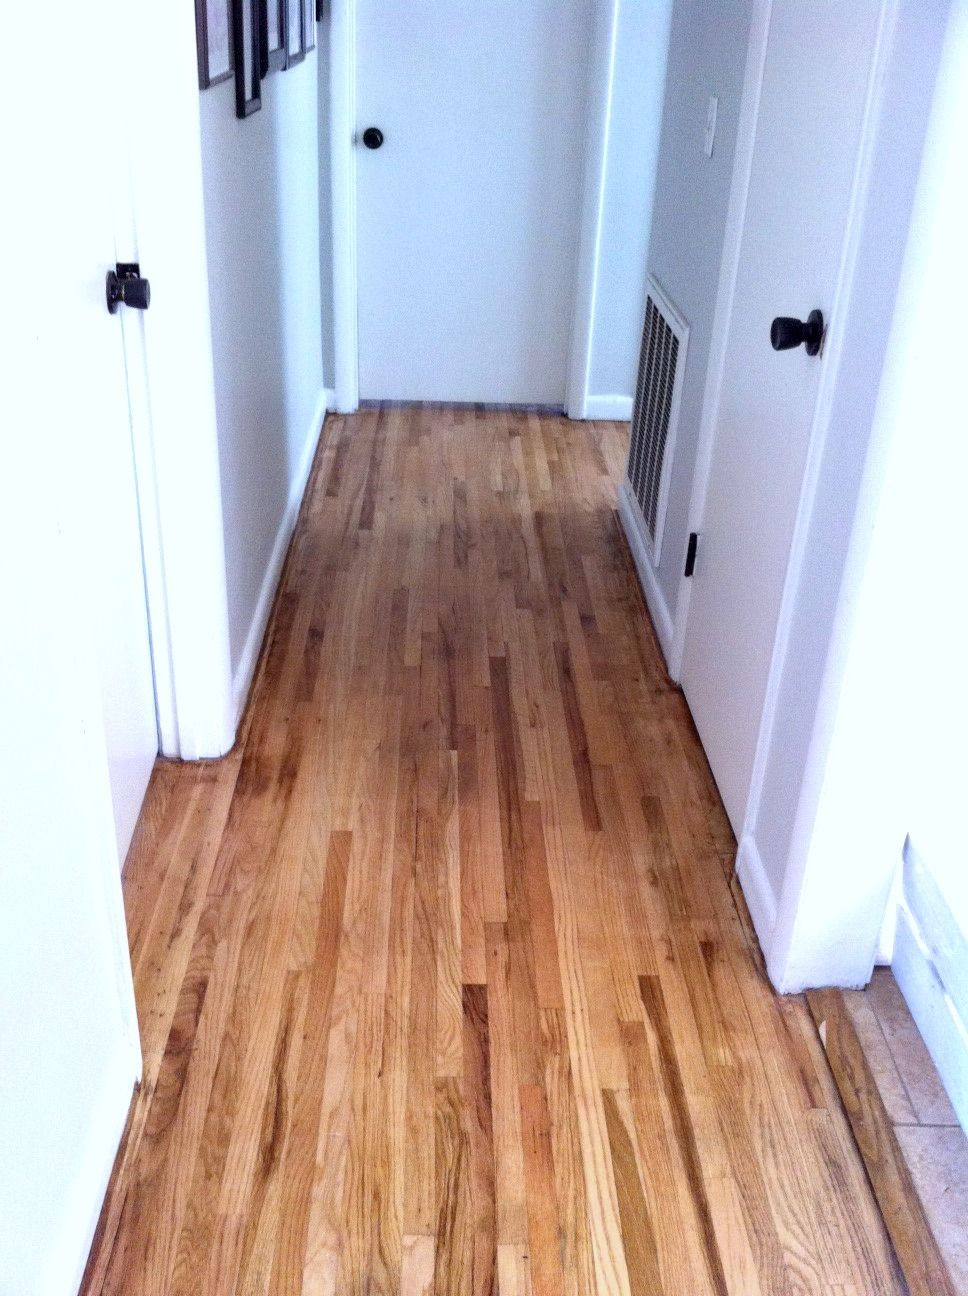 hardwood flooring cost per room of this is what happens when you dont listen to the folks at lowes intended for refinishing hardwood floors includes price breakdown mom in music city i didnt stain my floors i think the natural wood goes well with our house